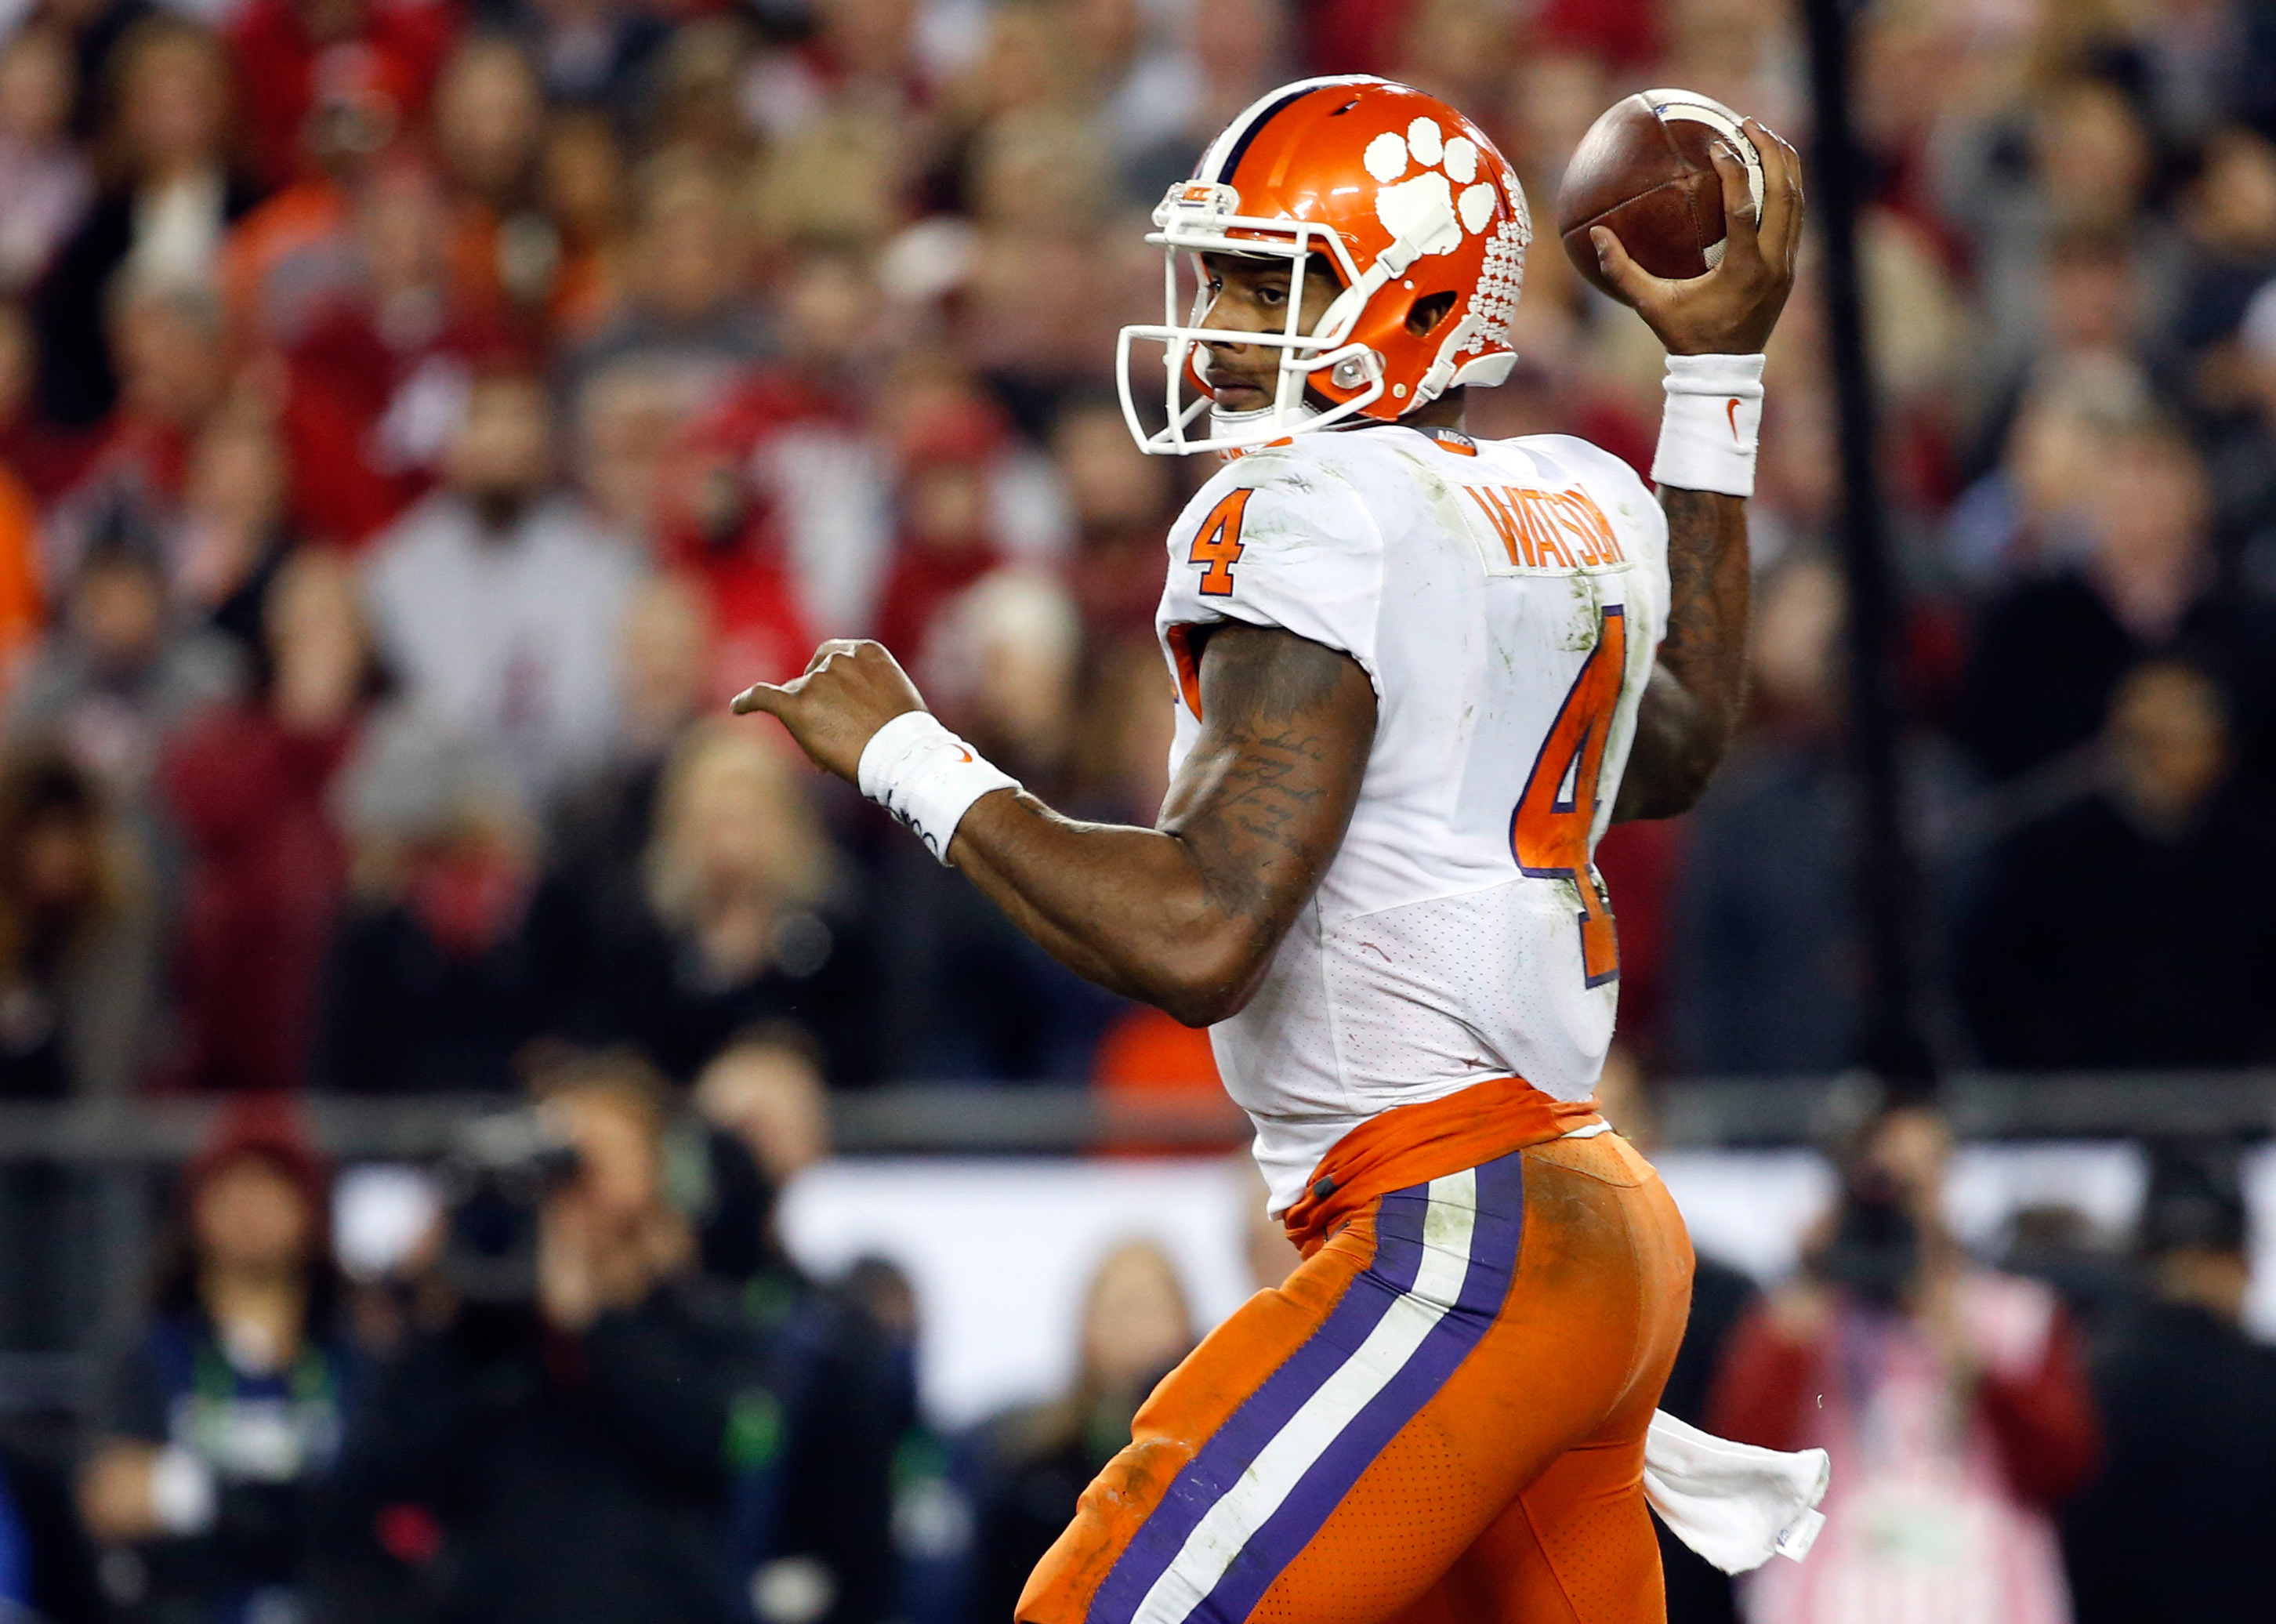 9823939-ncaa-football-cfp-national-championship-clemson-vs-alabama